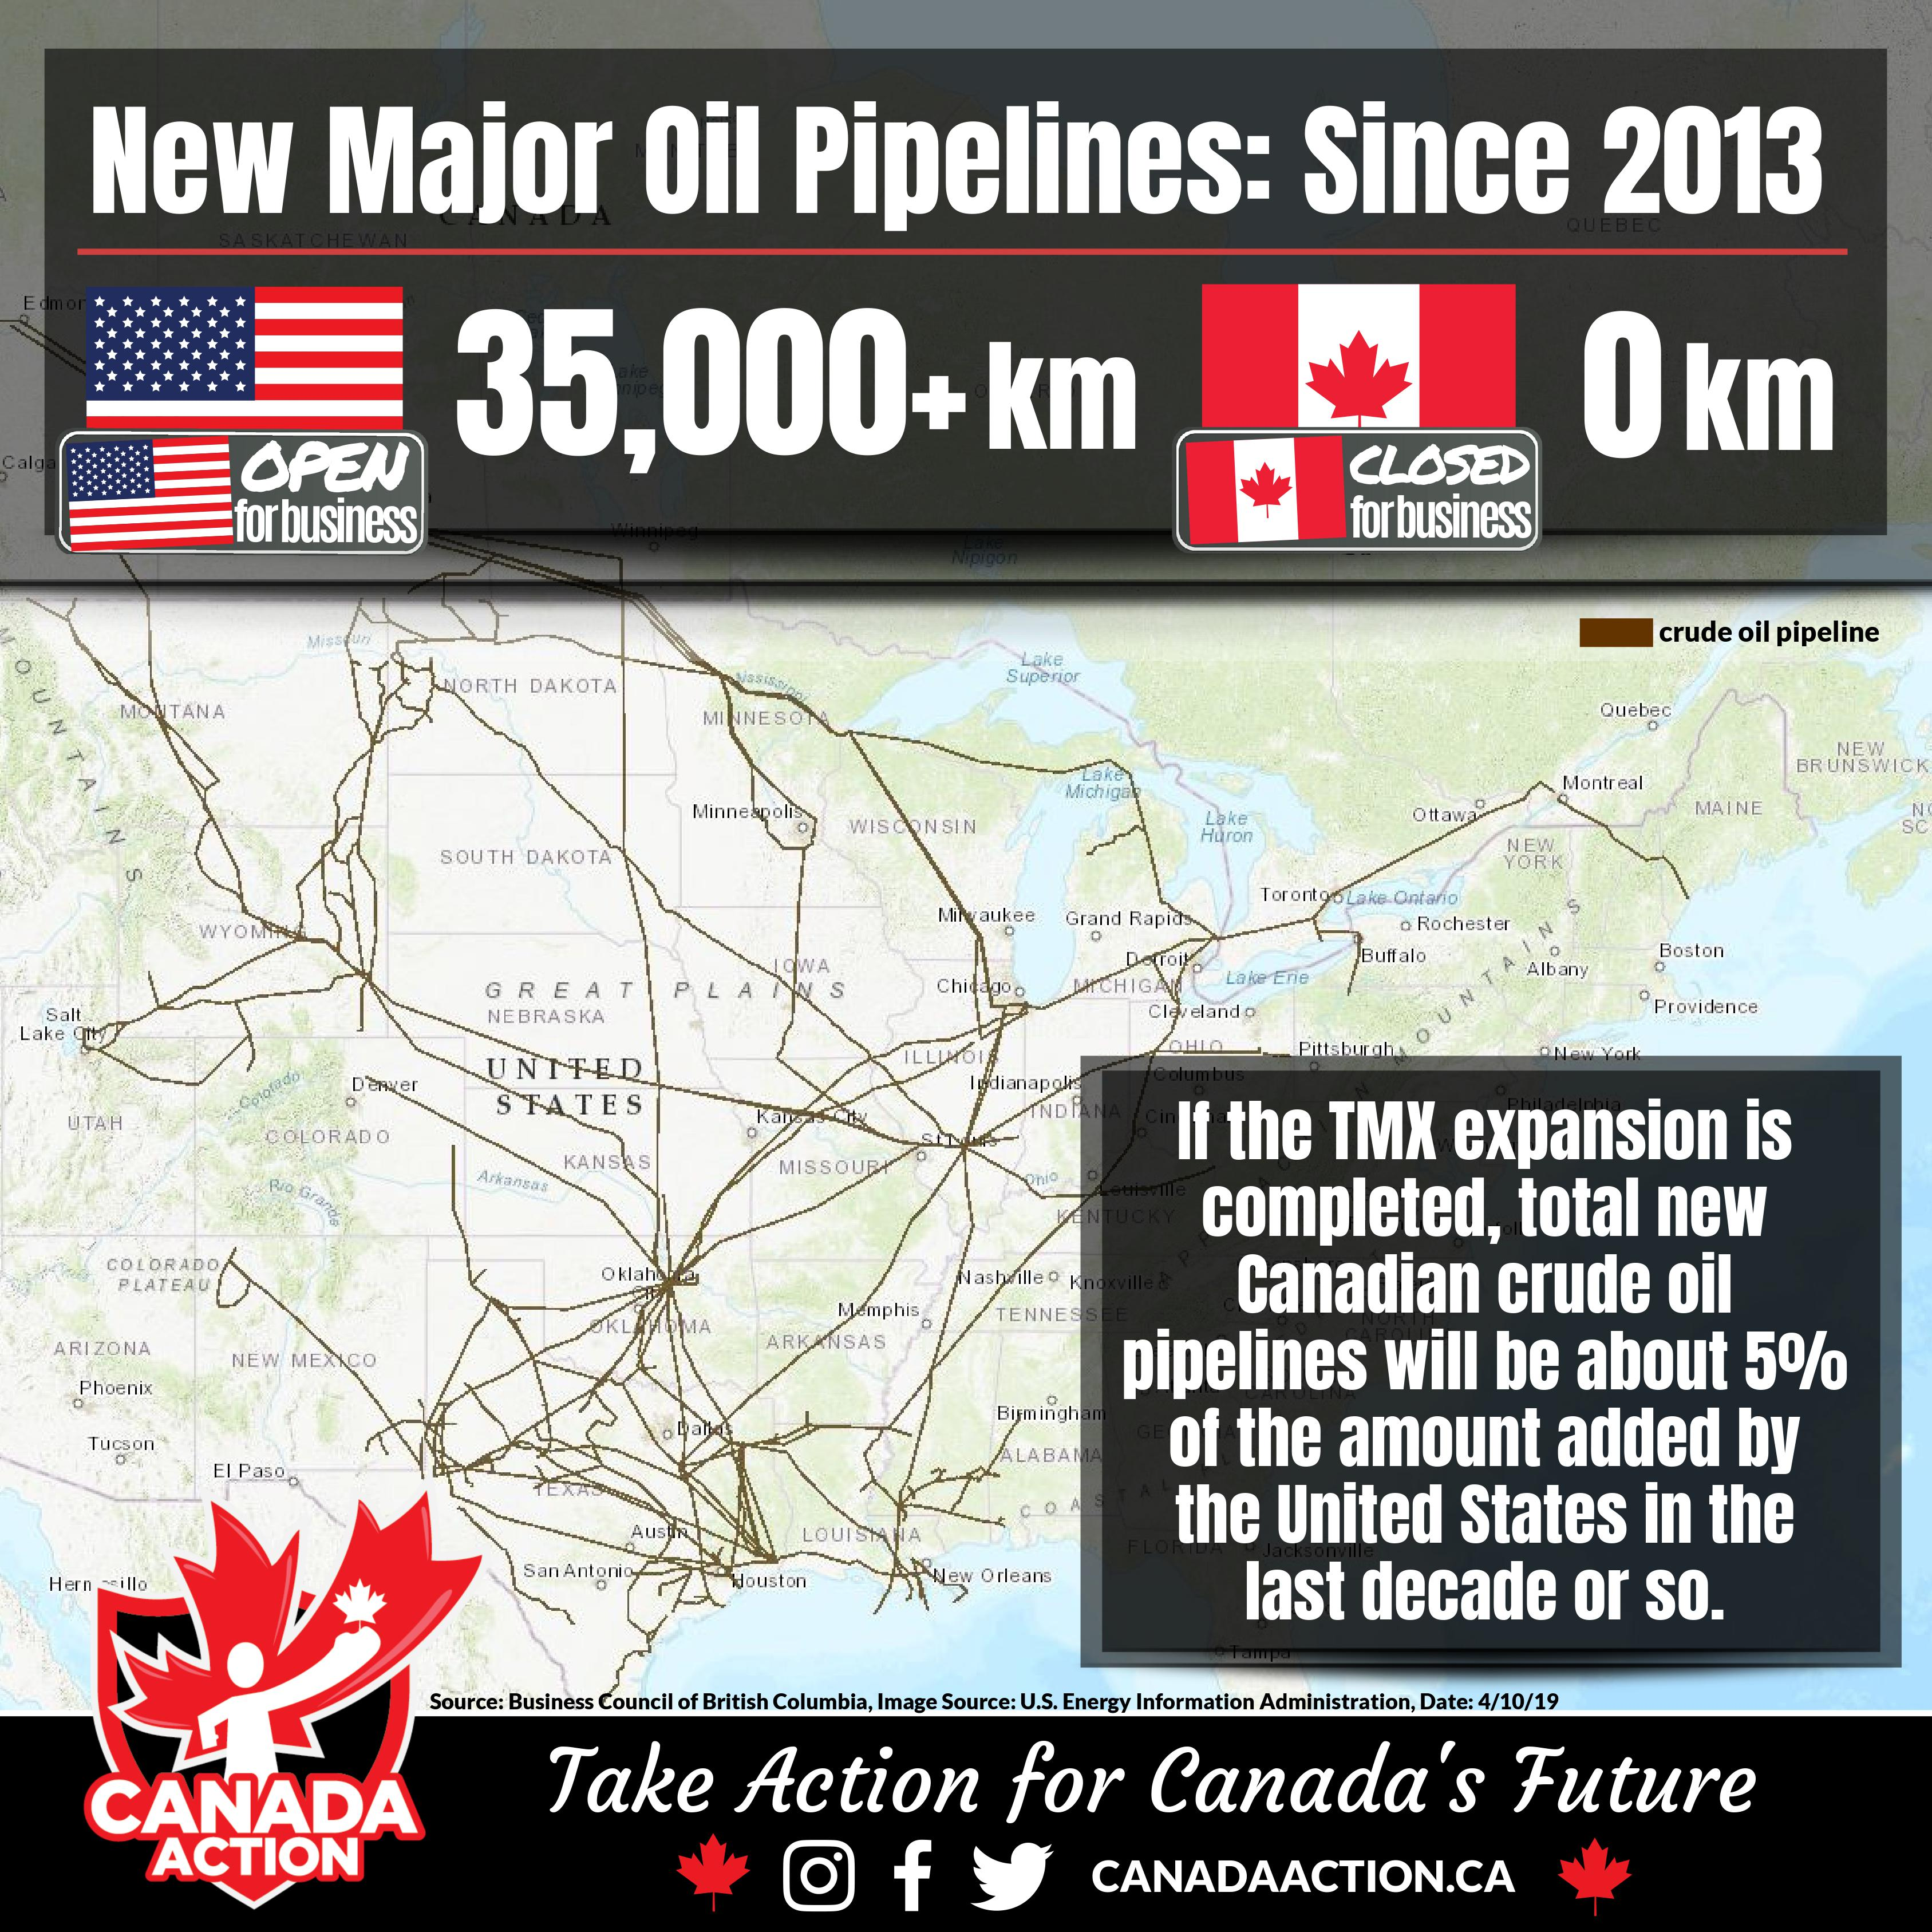 canadian vs usa new crude pipelines since 2013